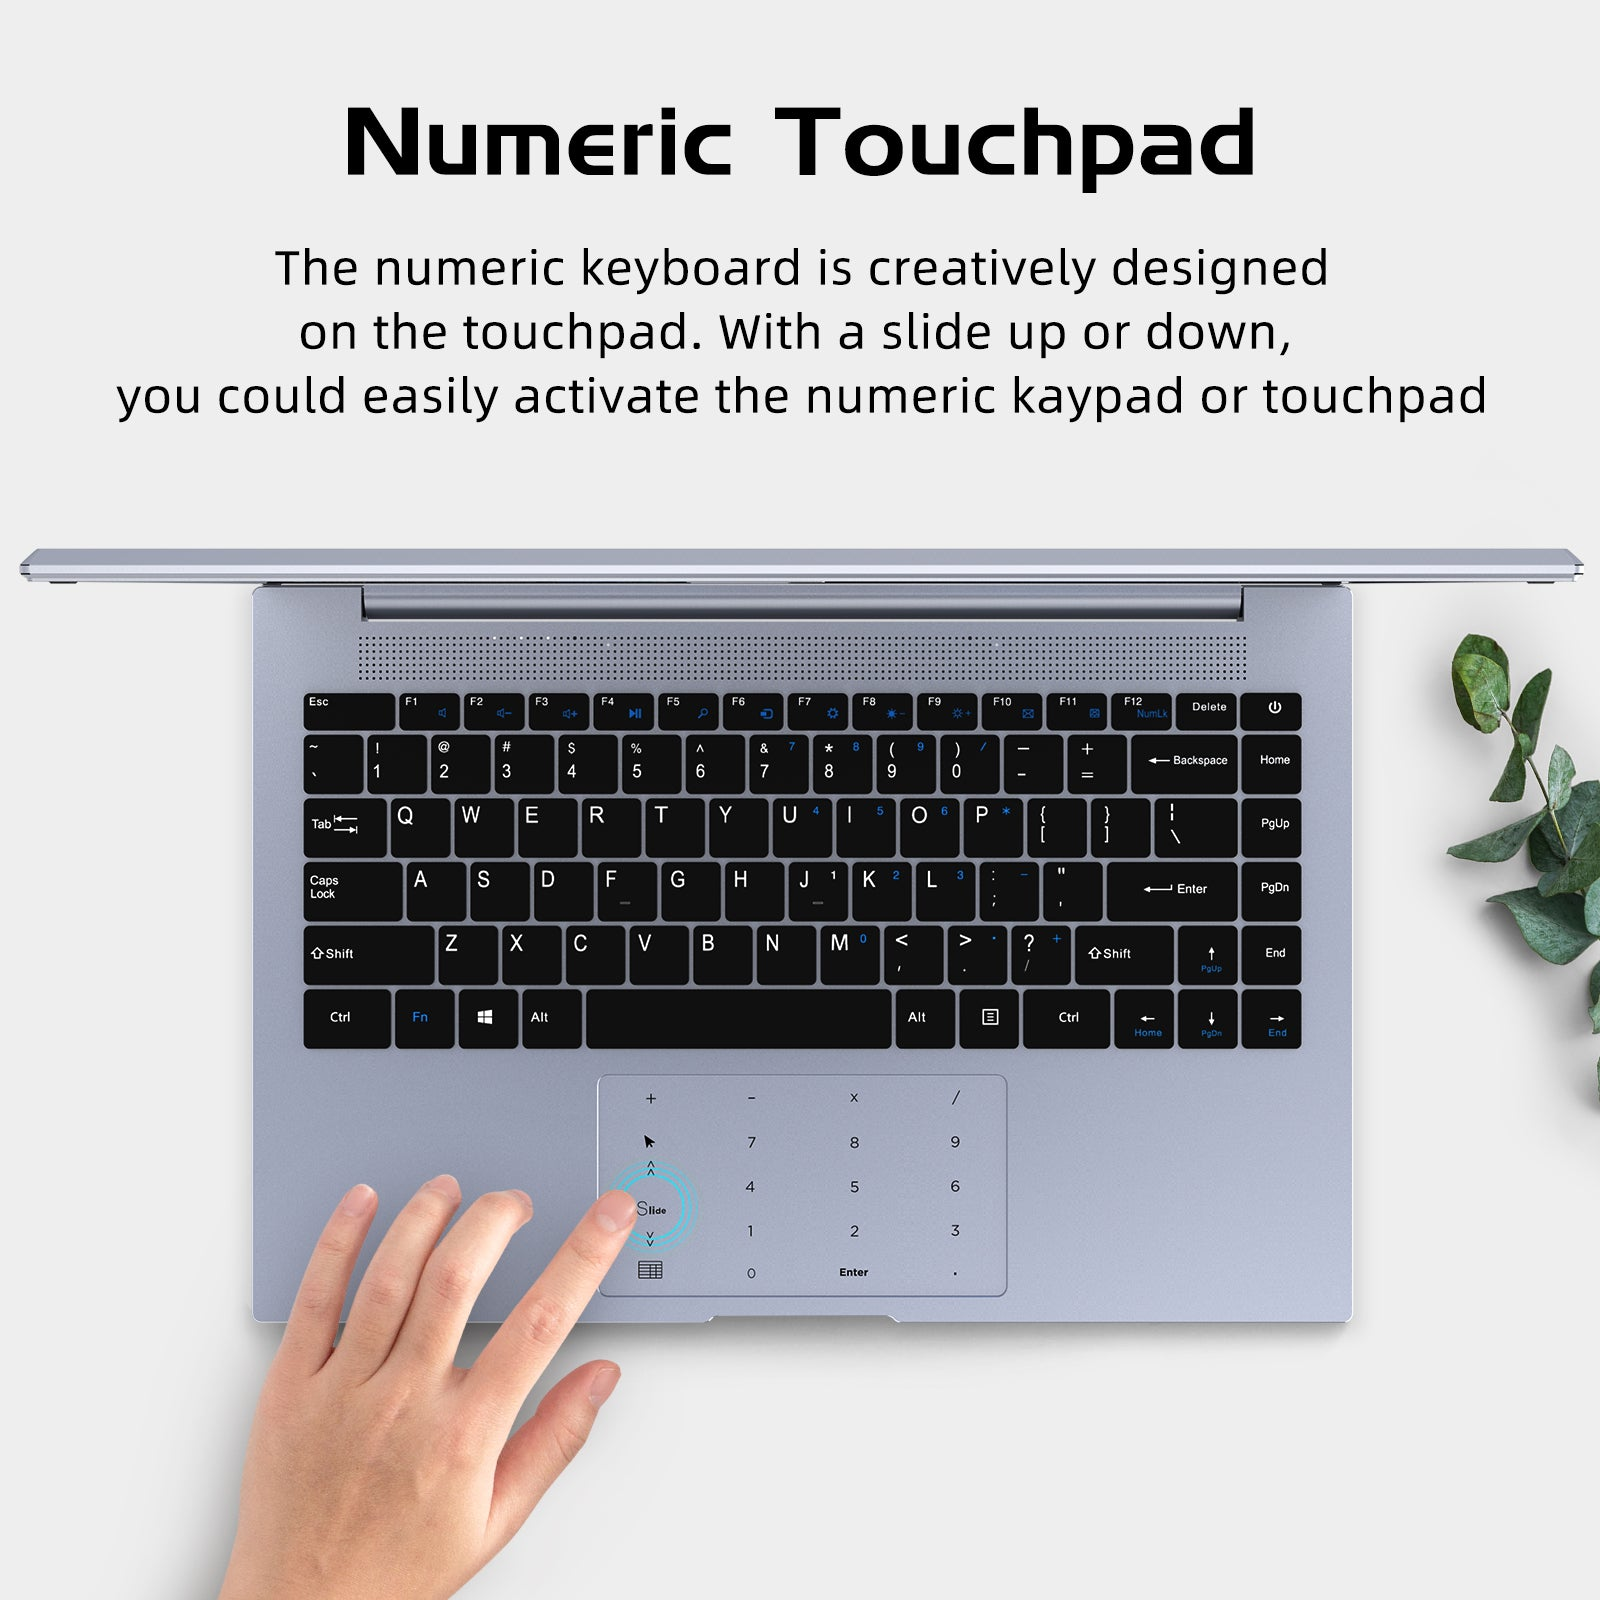 N140 Numeric touchpad